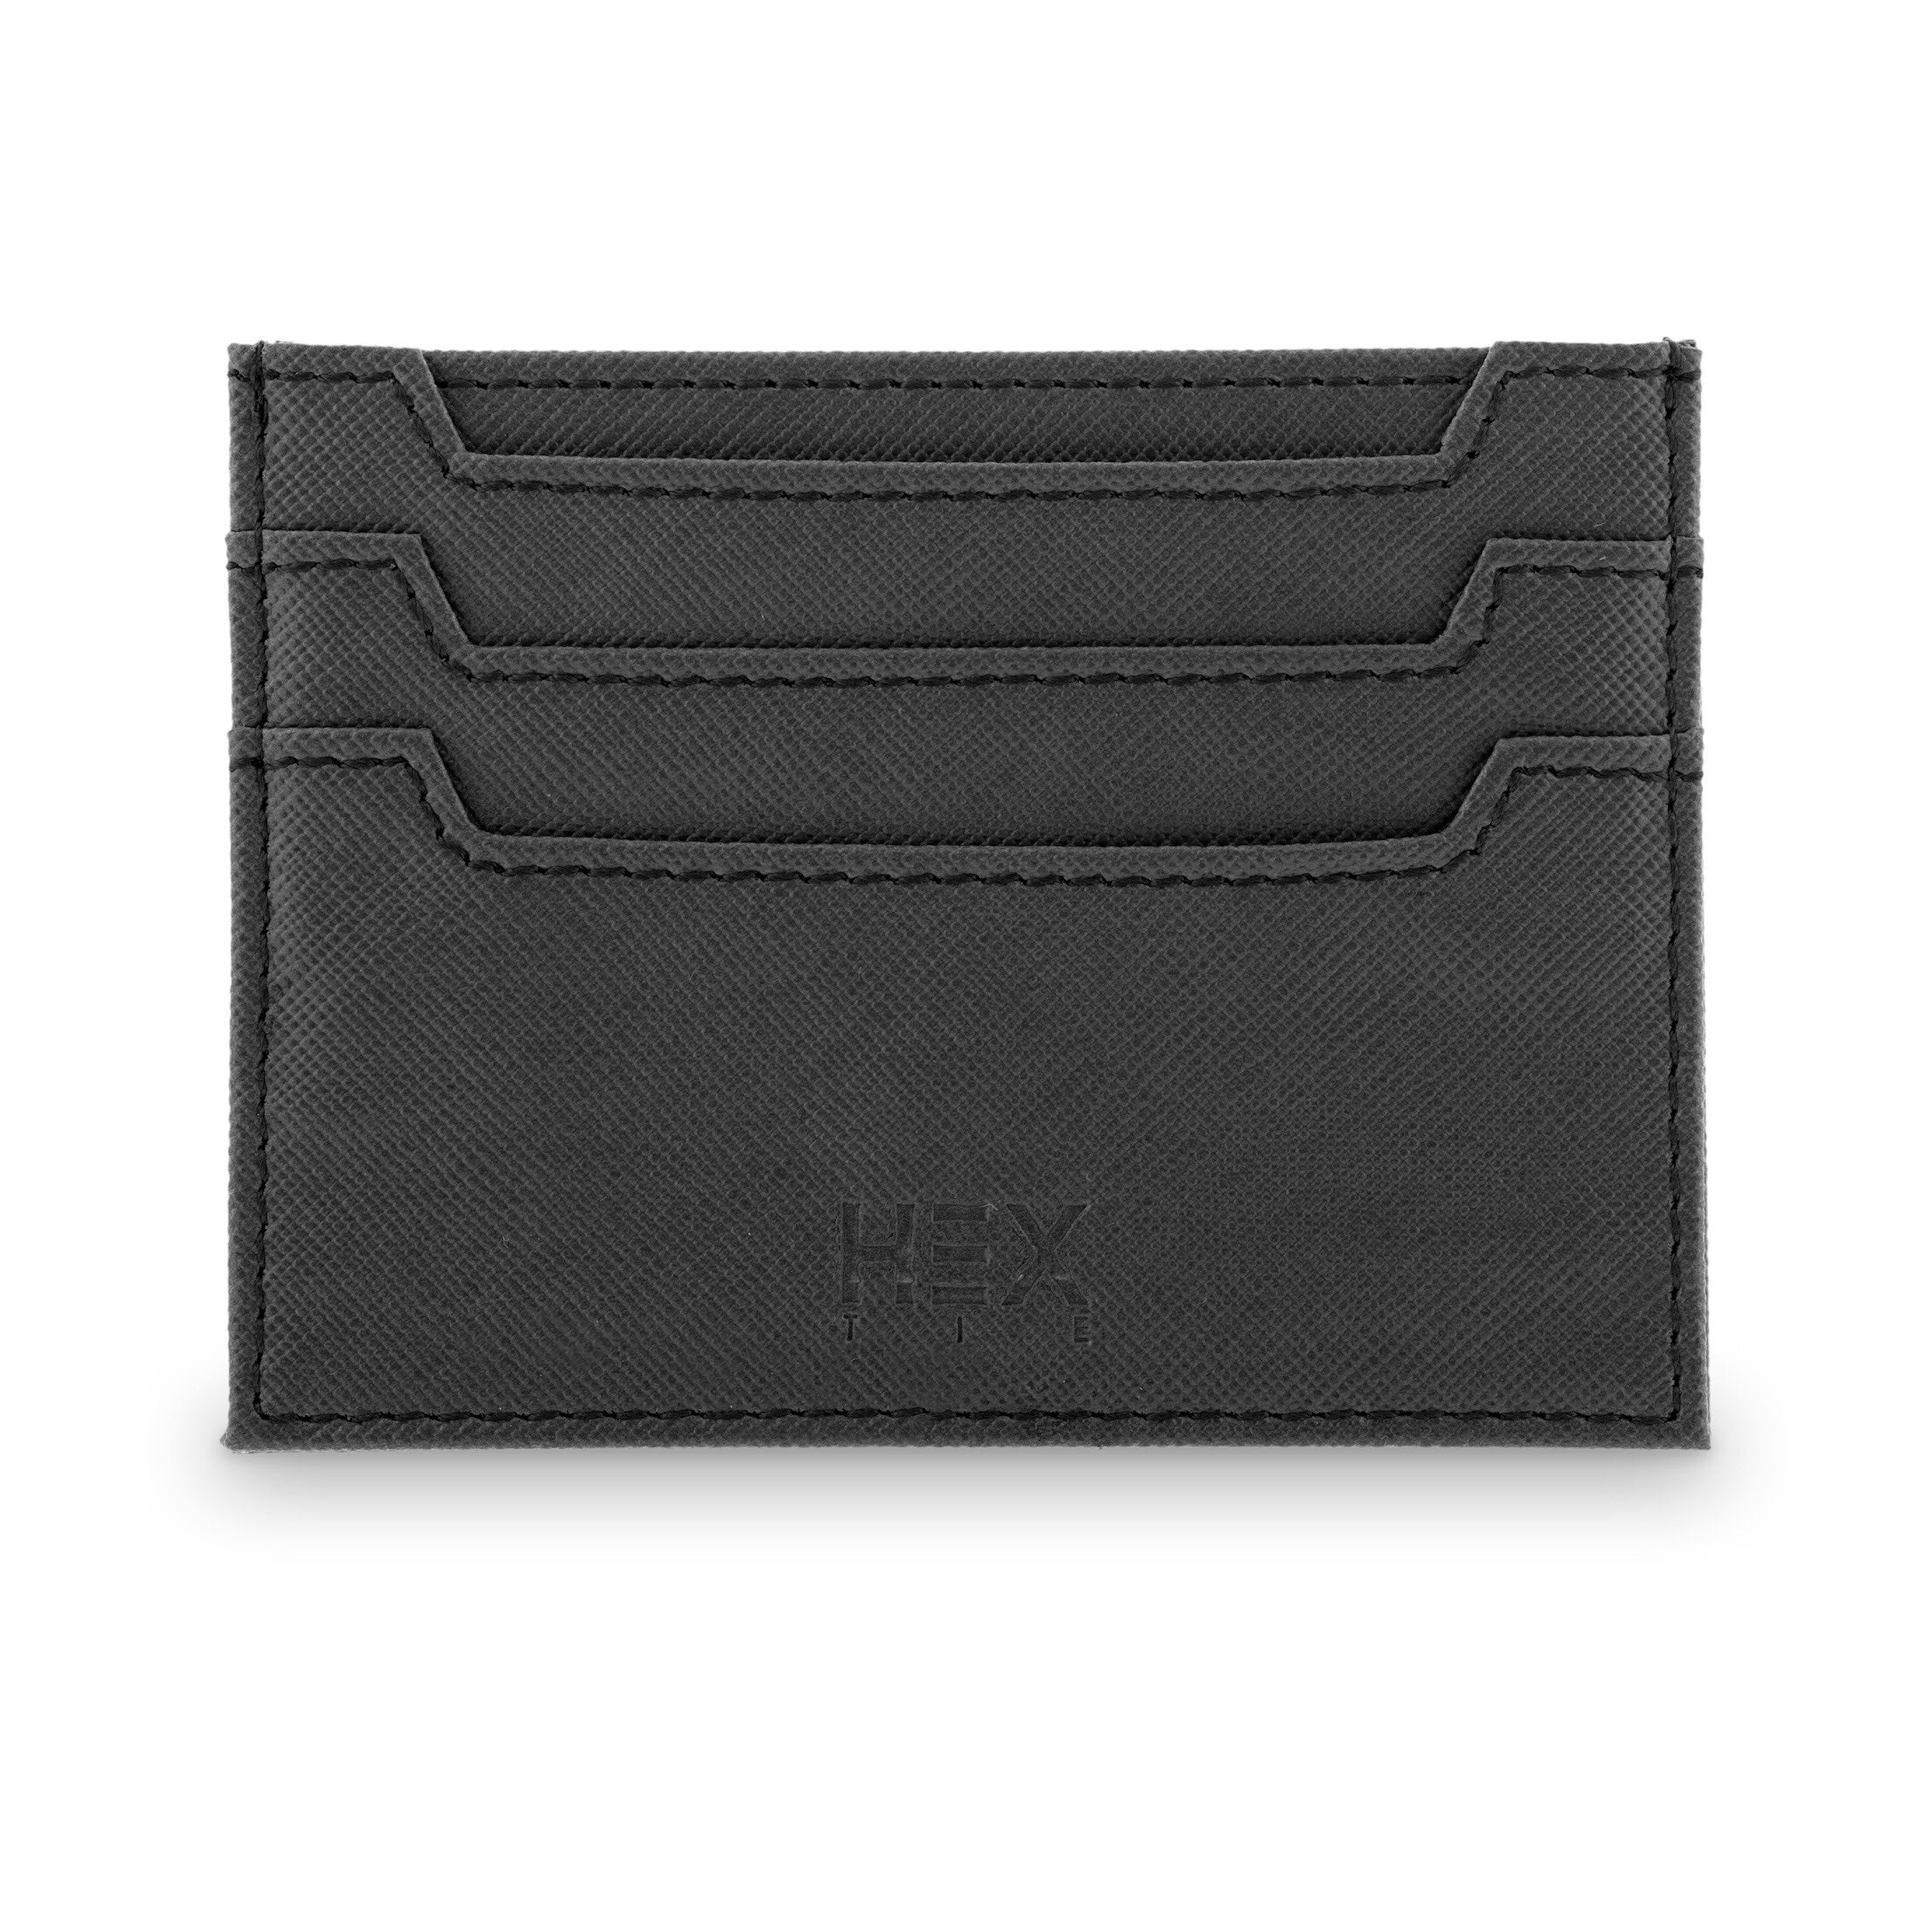 NOCHE Card Holder